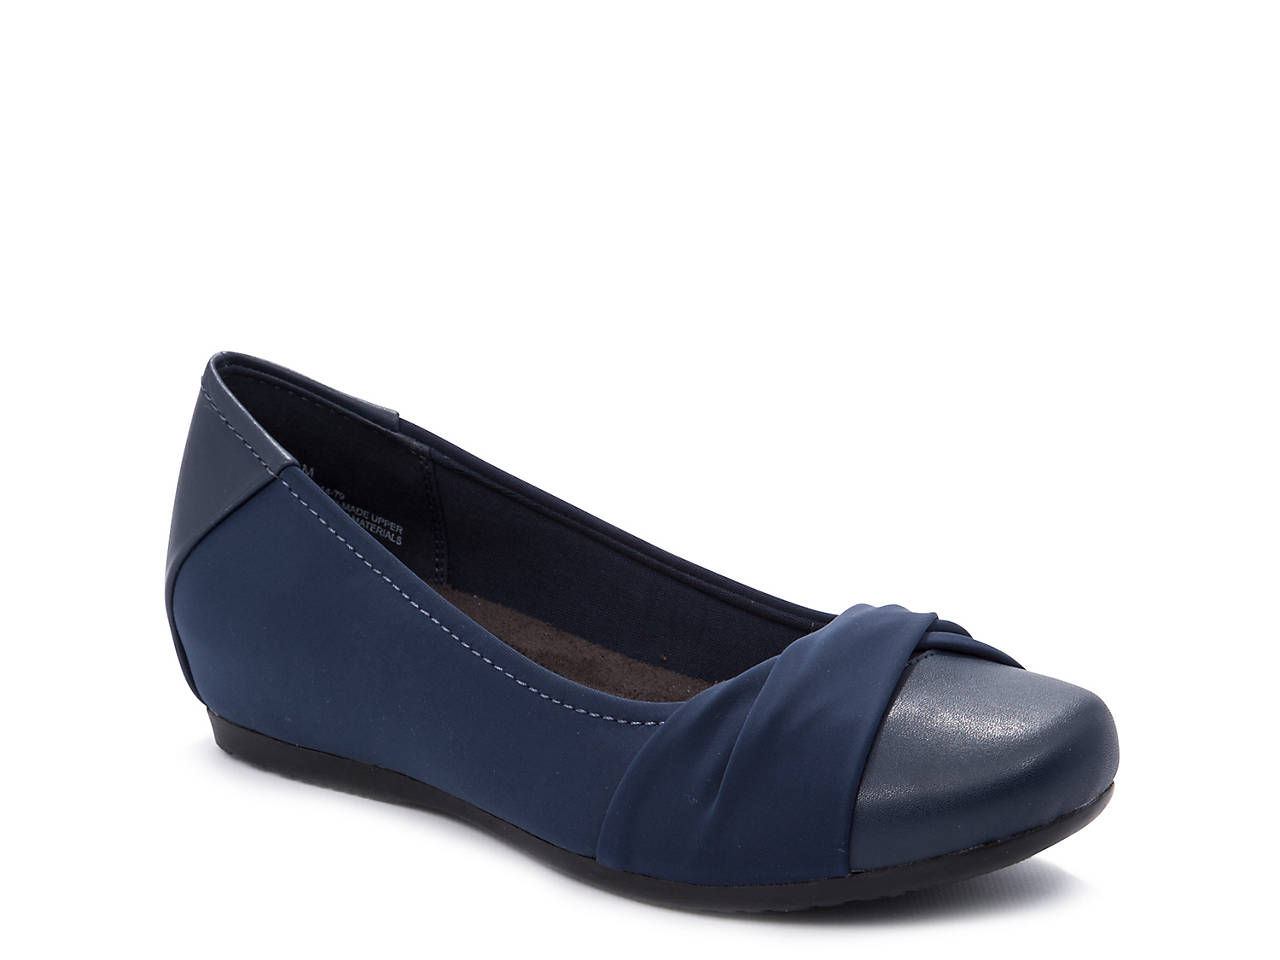 BareTraps Mitsy Flat - Available in Extended Sizes J2oaYy